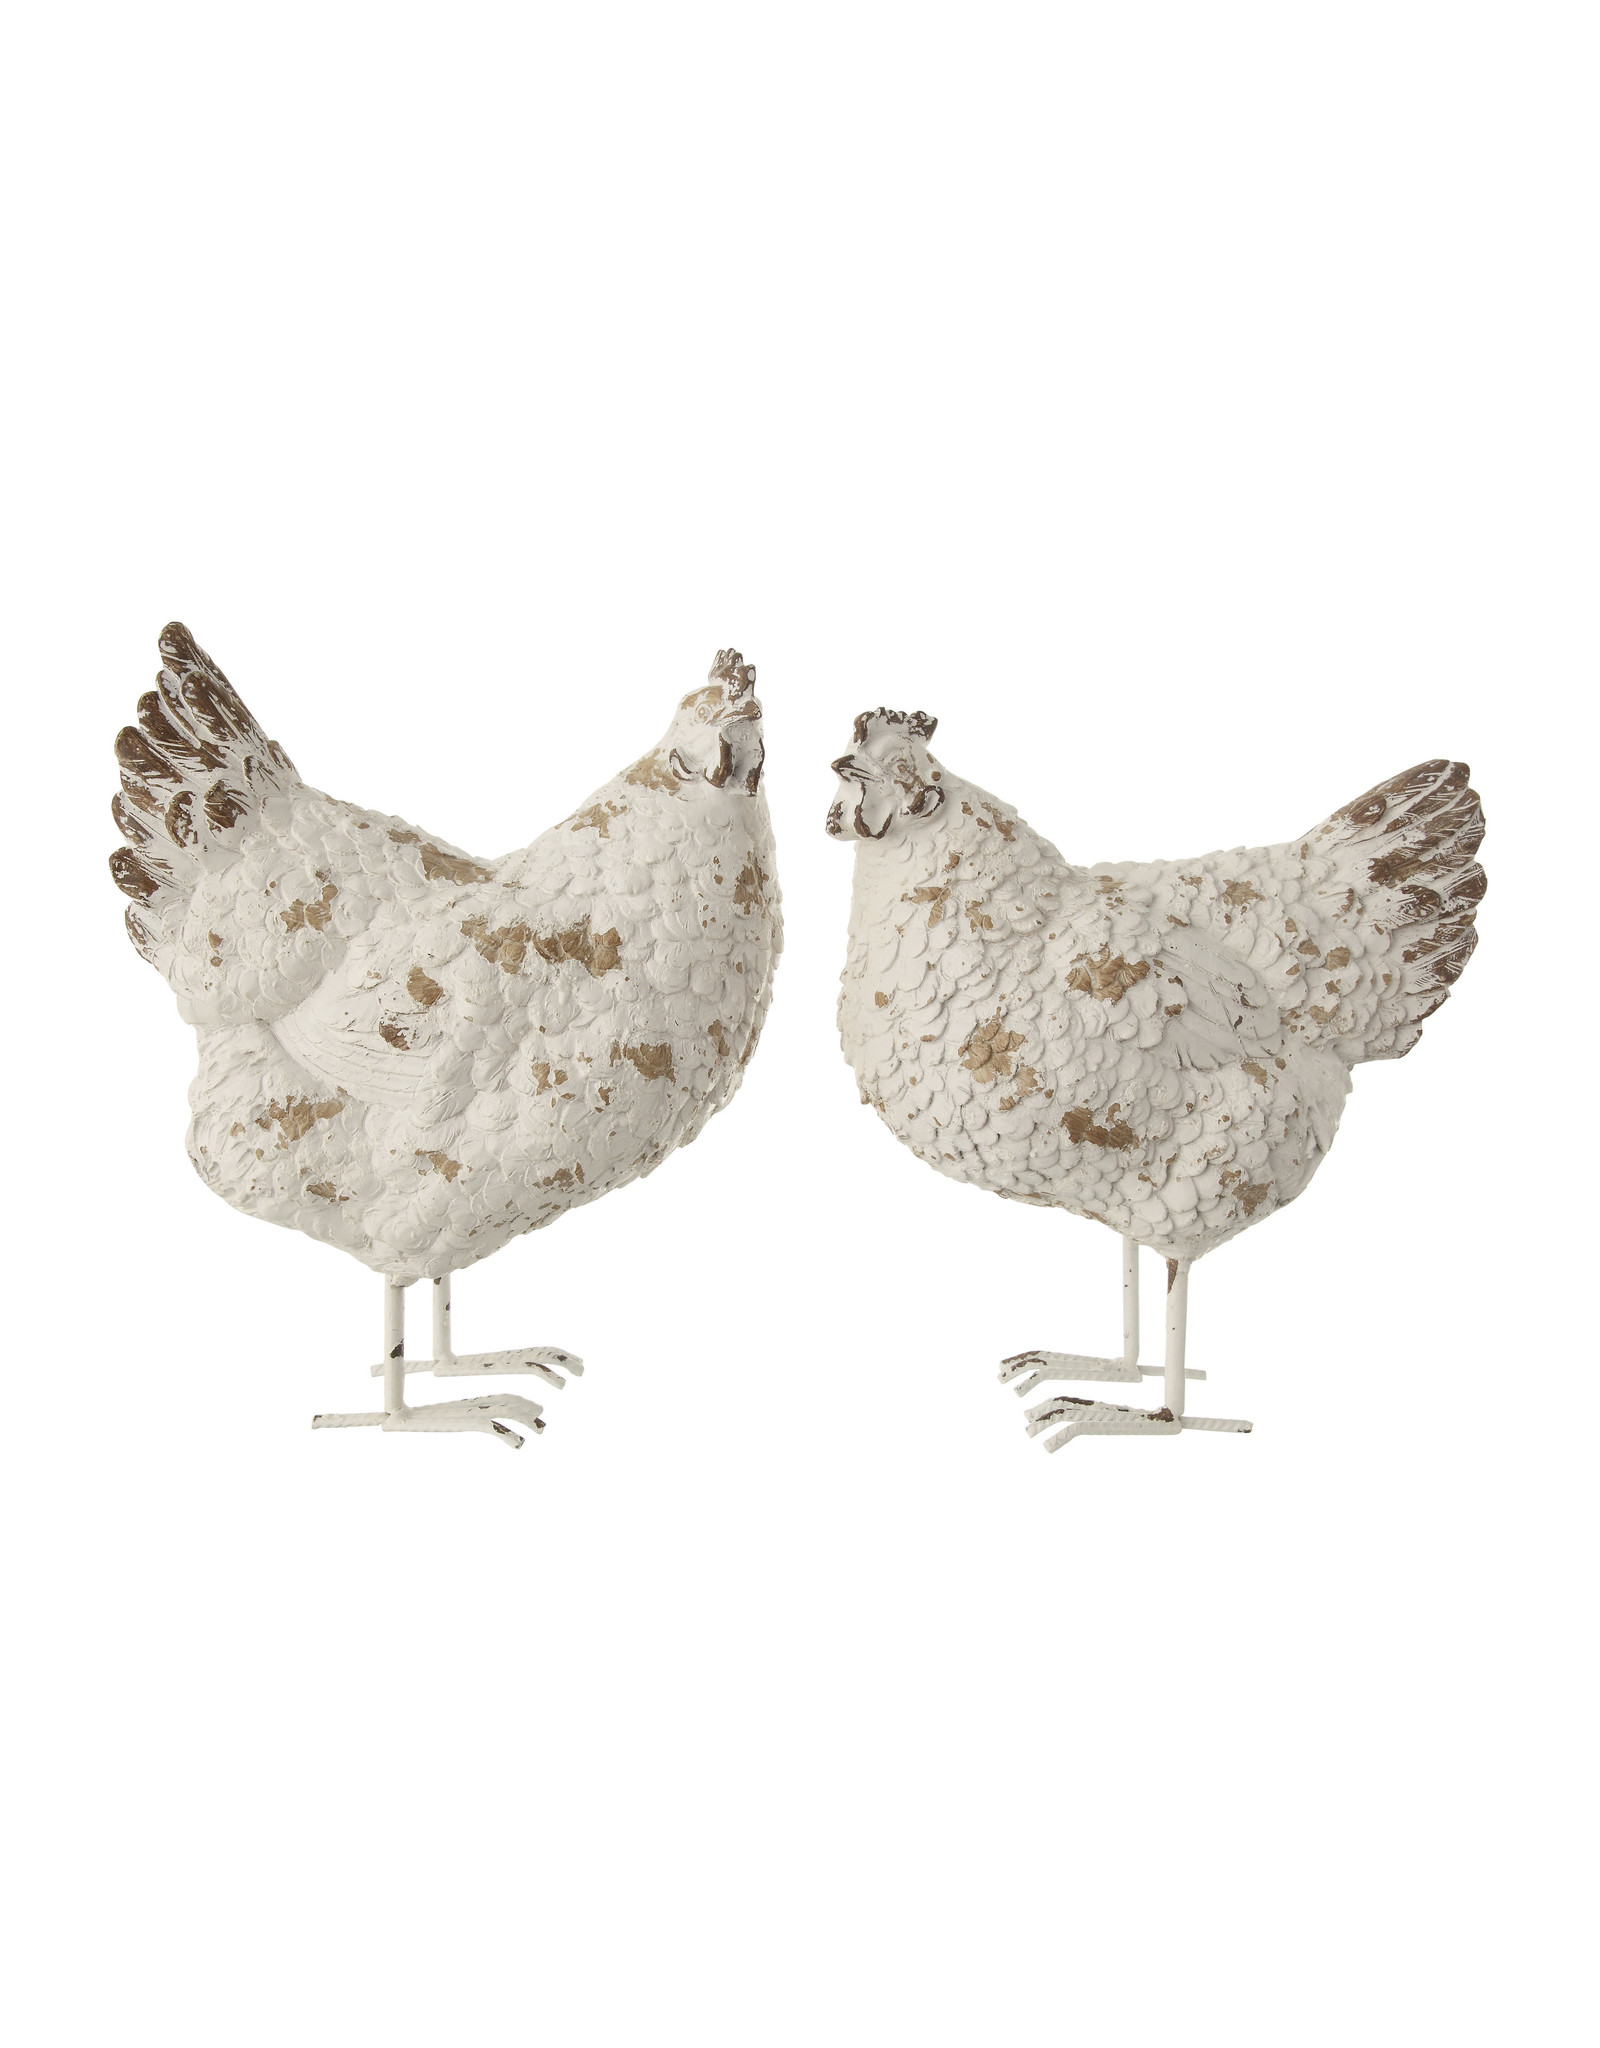 Distressed White Resin Hen Figurine with Metal Feet (Set of 2 Styles)